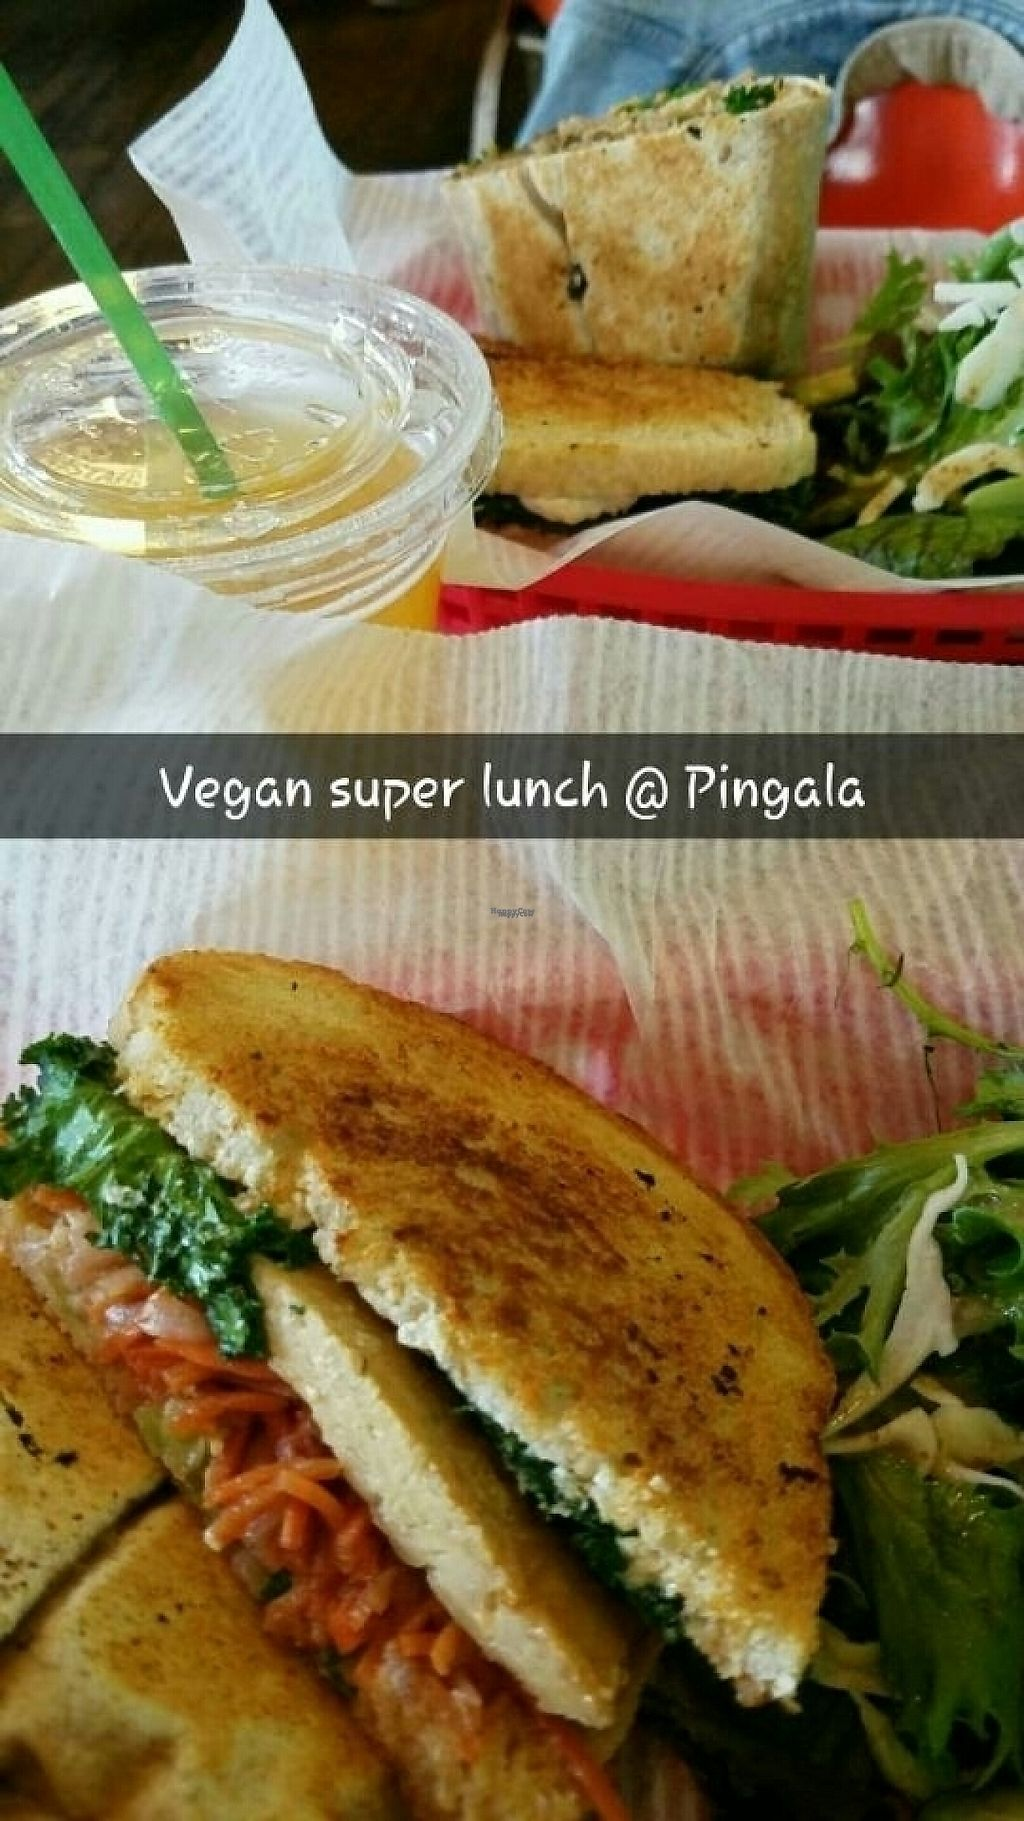 """Photo of Pingala Cafe  by <a href=""""/members/profile/andreathinks"""">andreathinks</a> <br/>had to snap chat our delicious lunch <br/> November 12, 2016  - <a href='/contact/abuse/image/45669/189068'>Report</a>"""